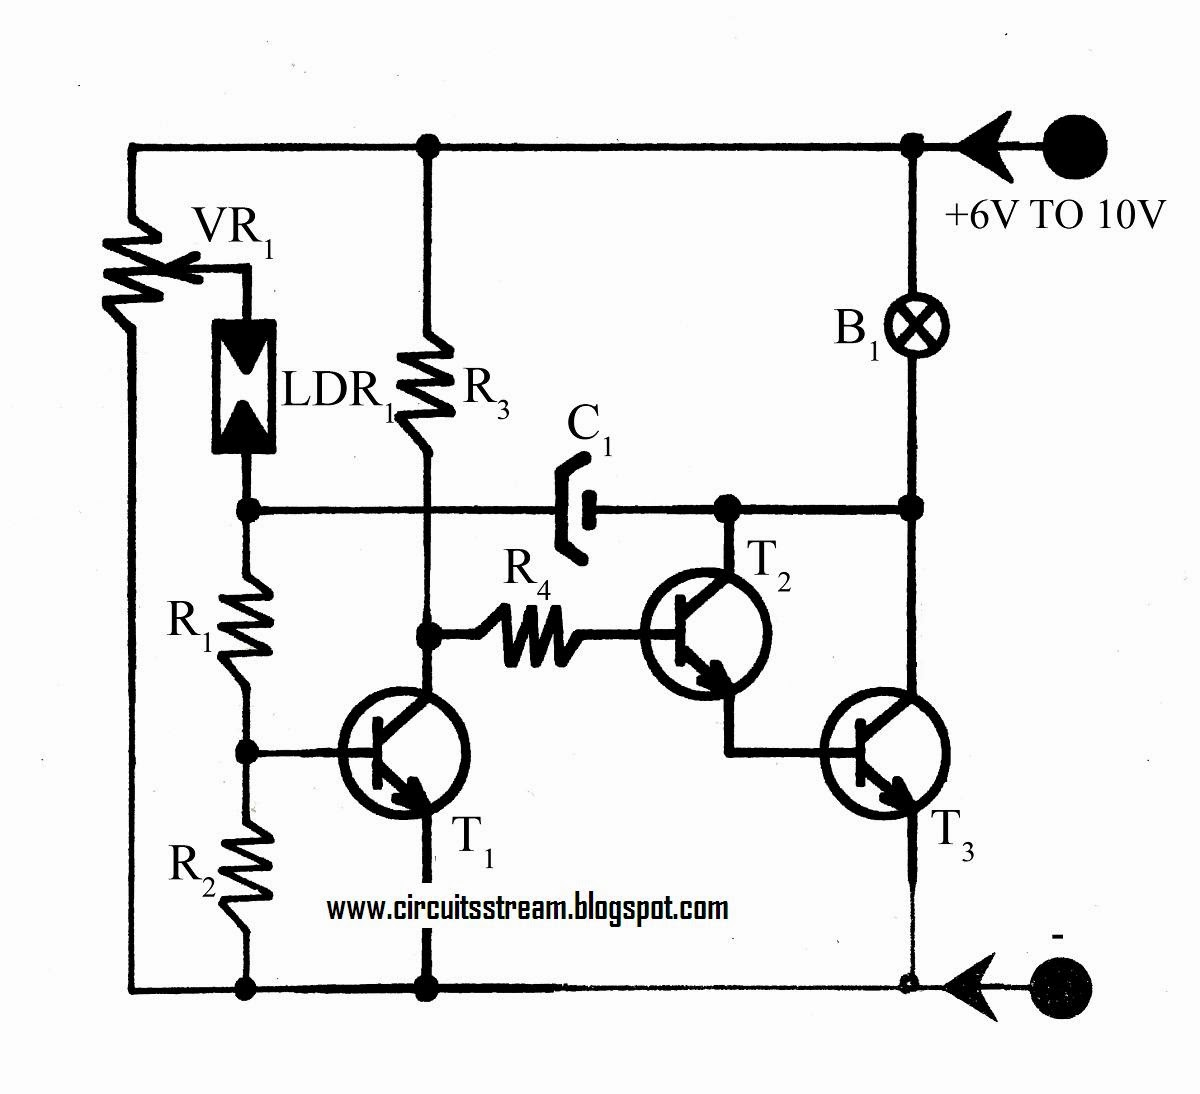 the schematic of the darkactivated switch circuit we will build is